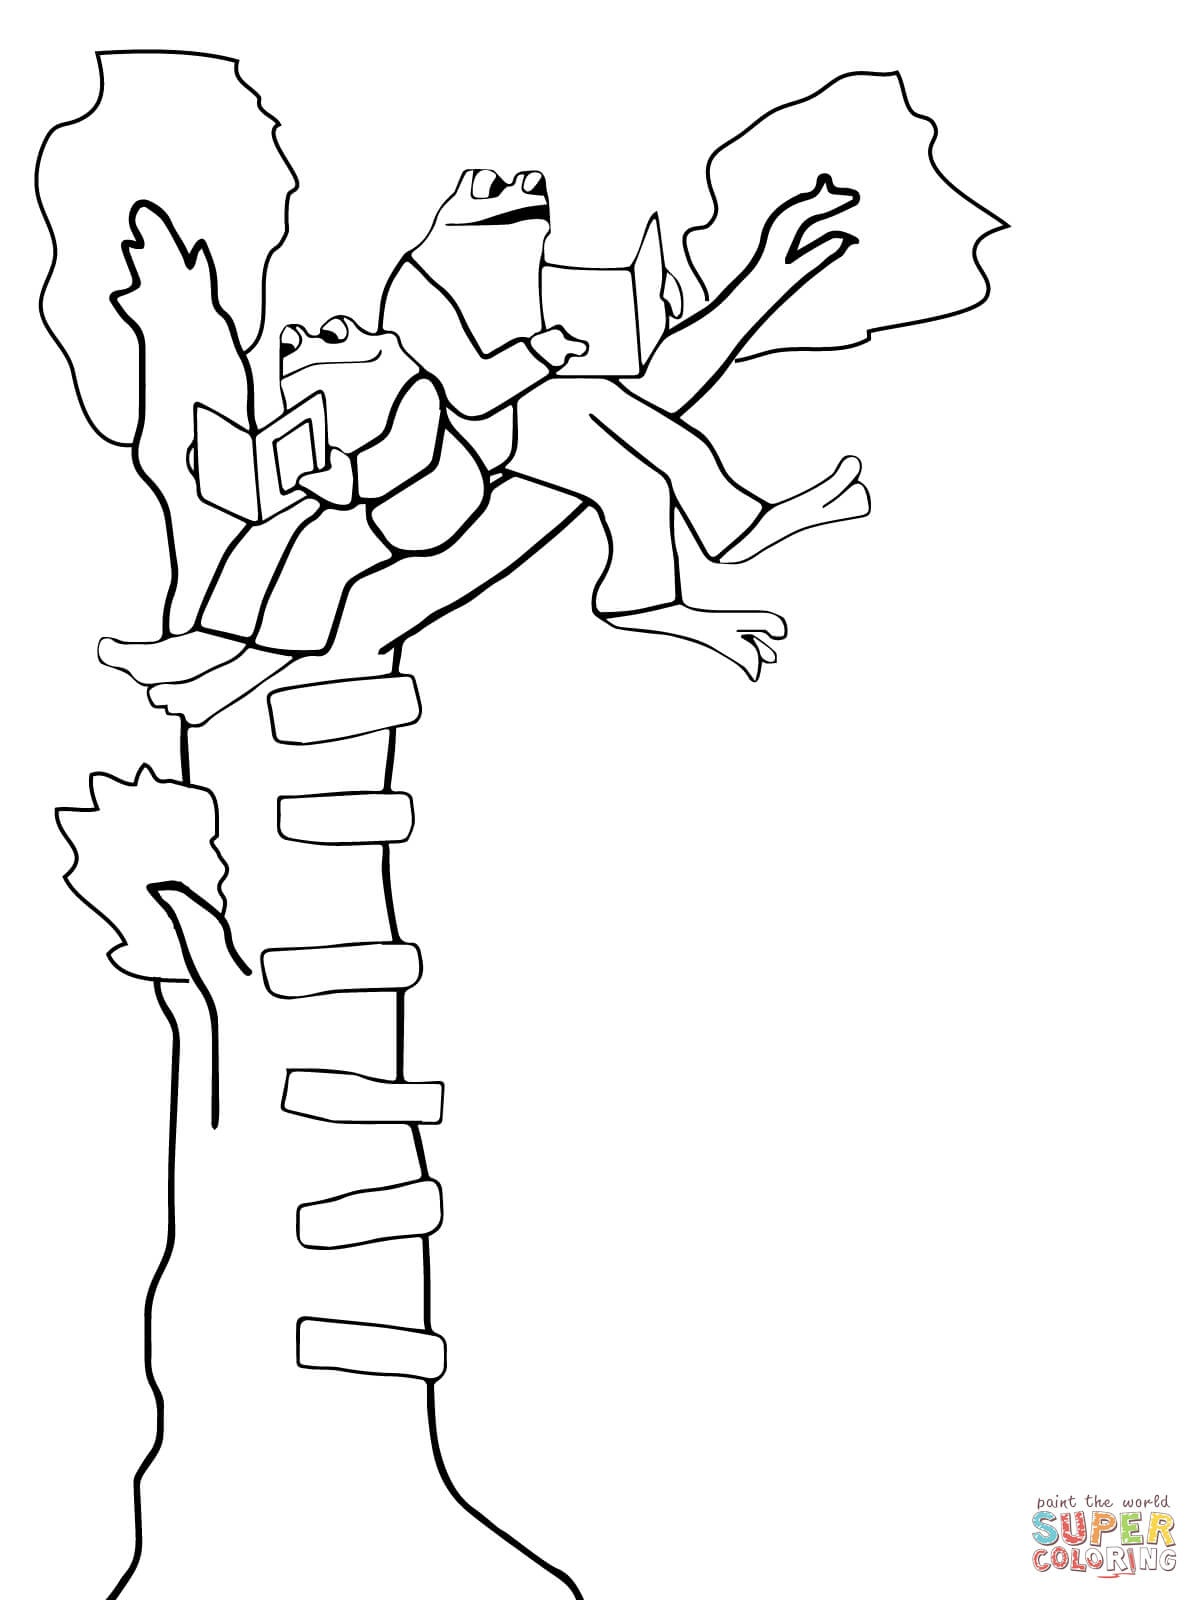 Frog And Toad Coloring Page | Free Printable Coloring Pages - Free Frog And Toad Are Friends Printables